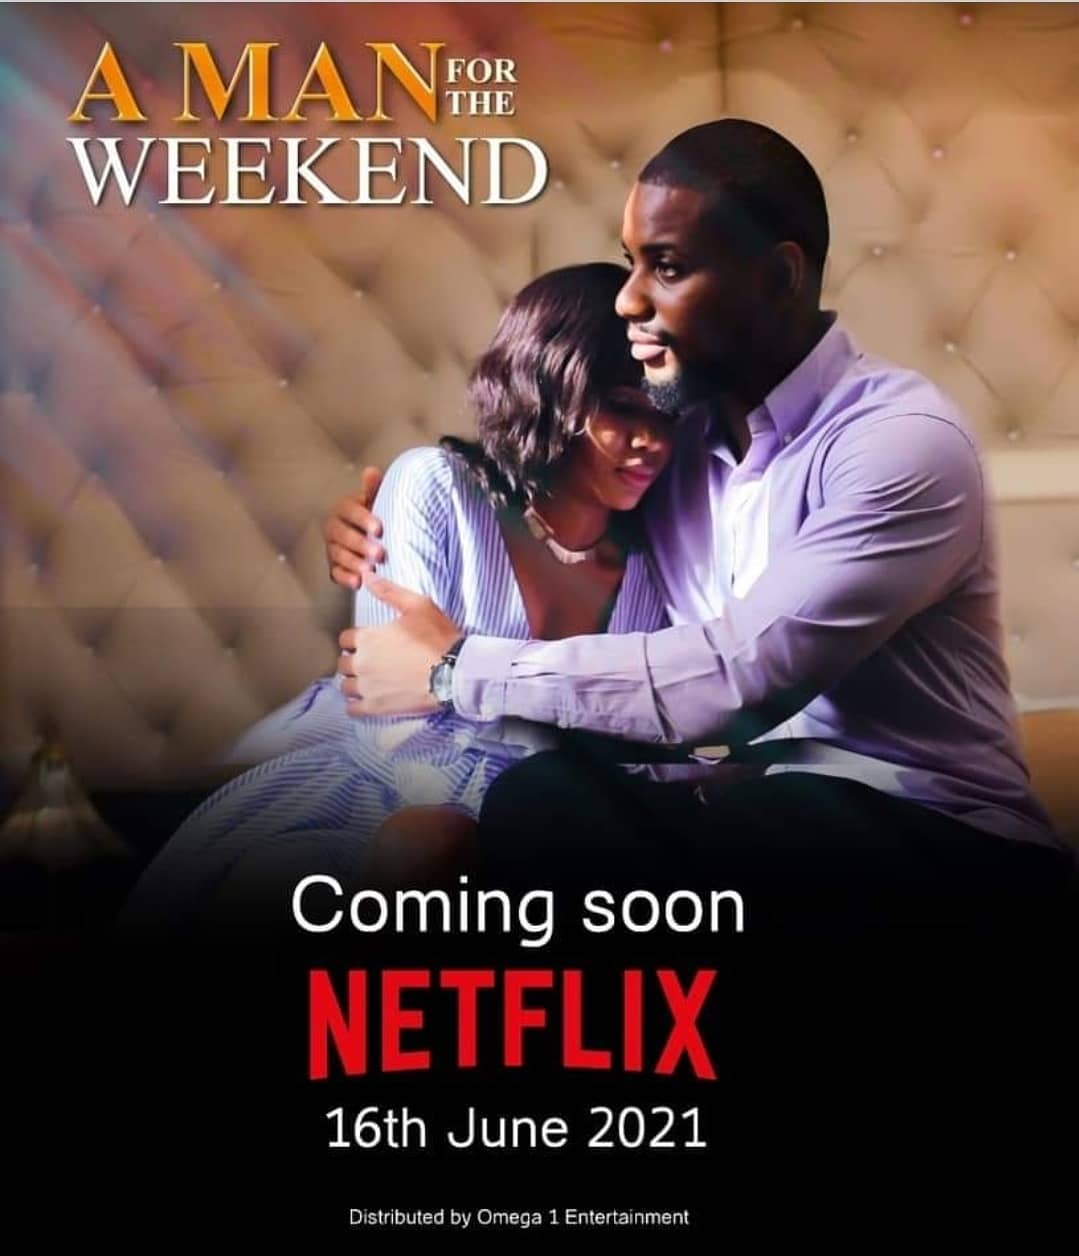 The Best Collywood films streaming on Netflix in 2021 - A man for the week end